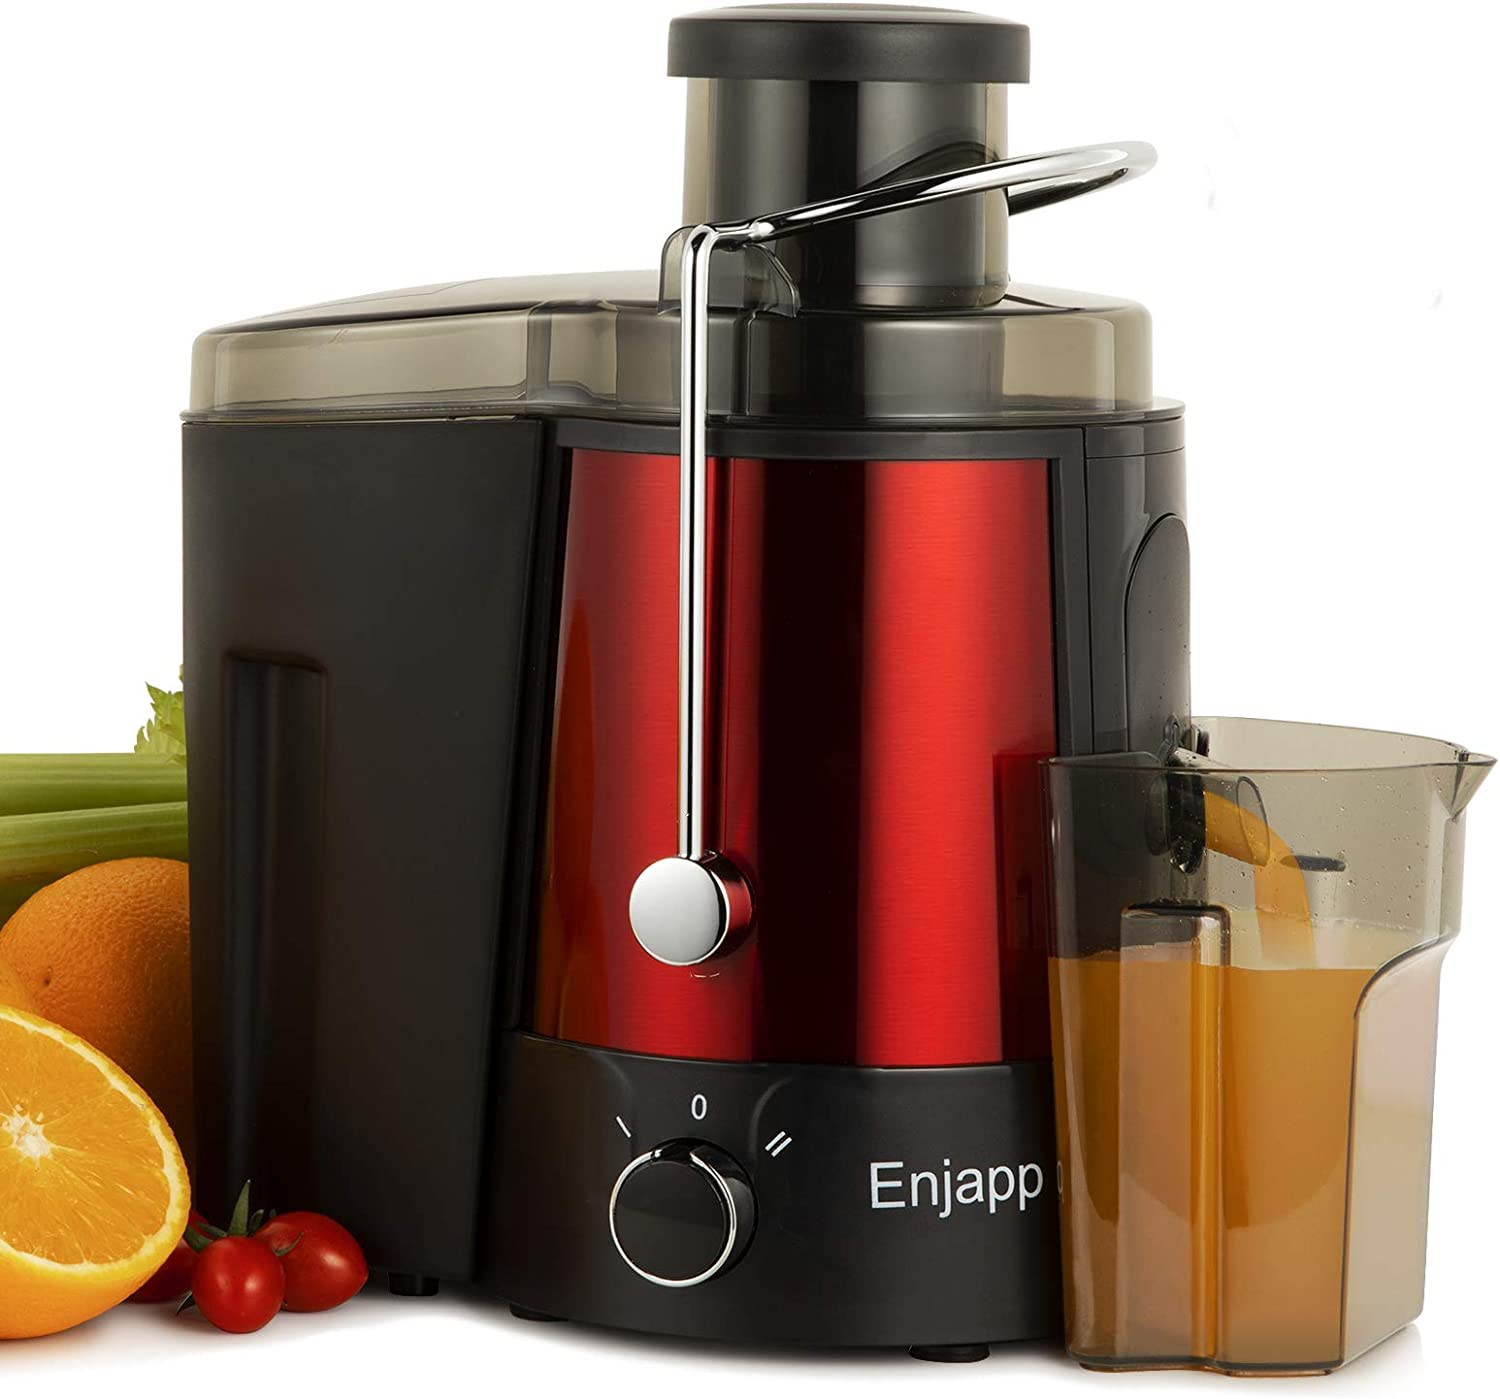 Juice Extractor, Extractor de Jugos y Vegetales, Centrifugal Juicer Machines Ultra Fast Extract Various Fruit and Vegetable Juicer with 3